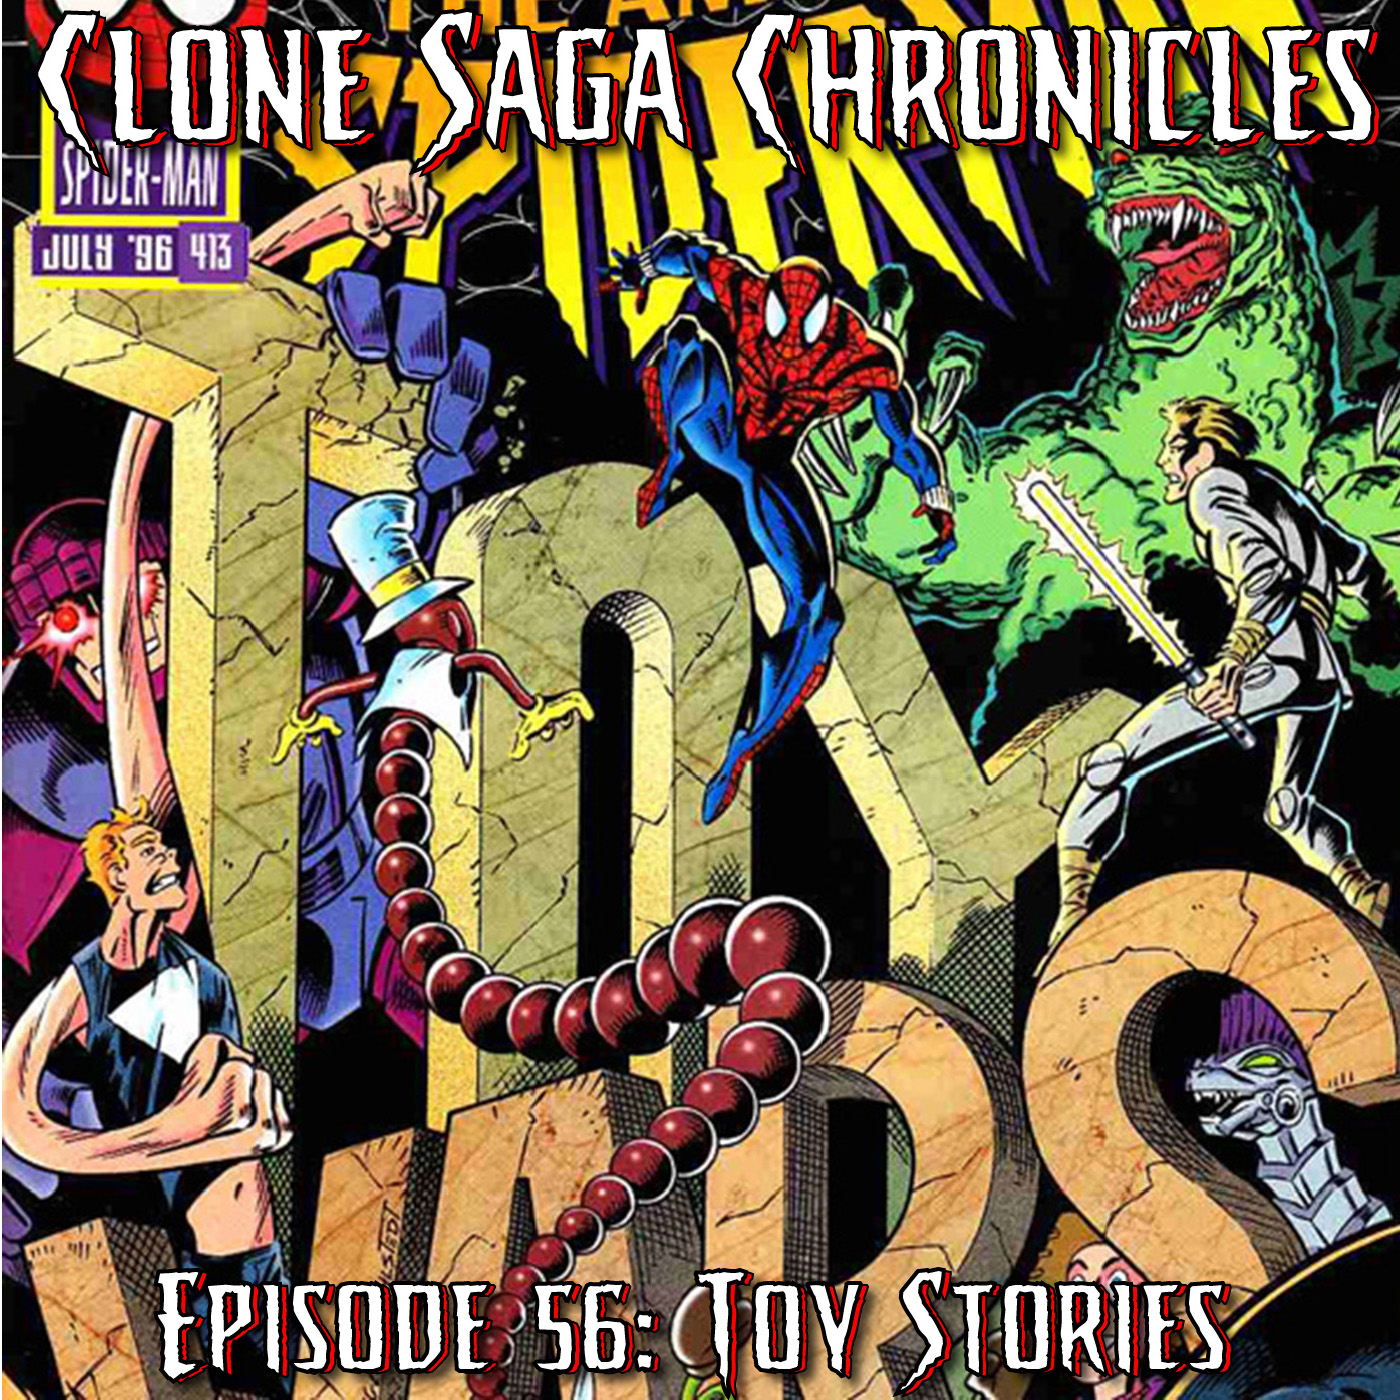 CSC Episode 56: Toy Stories (June July 1996)